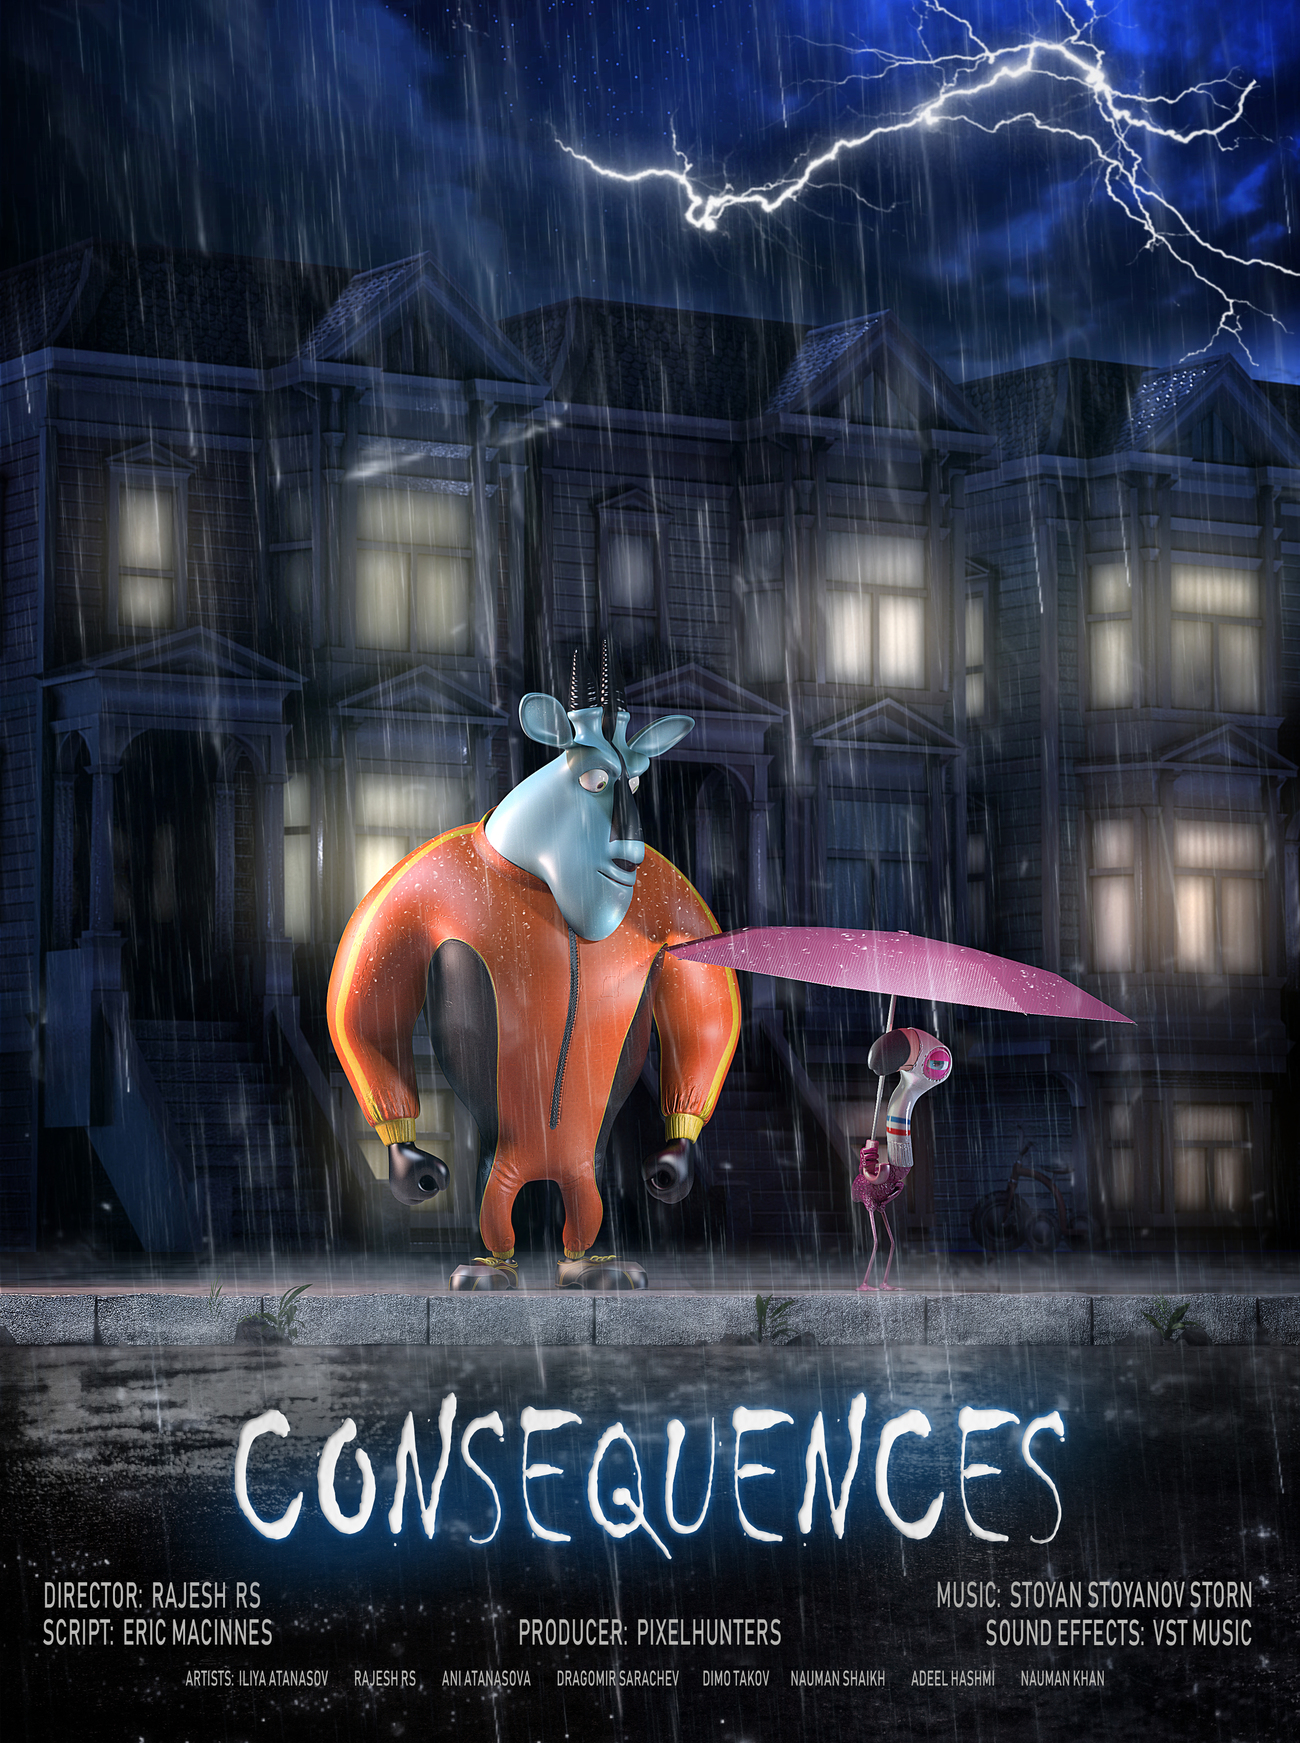 Consequences by Pixelhunters